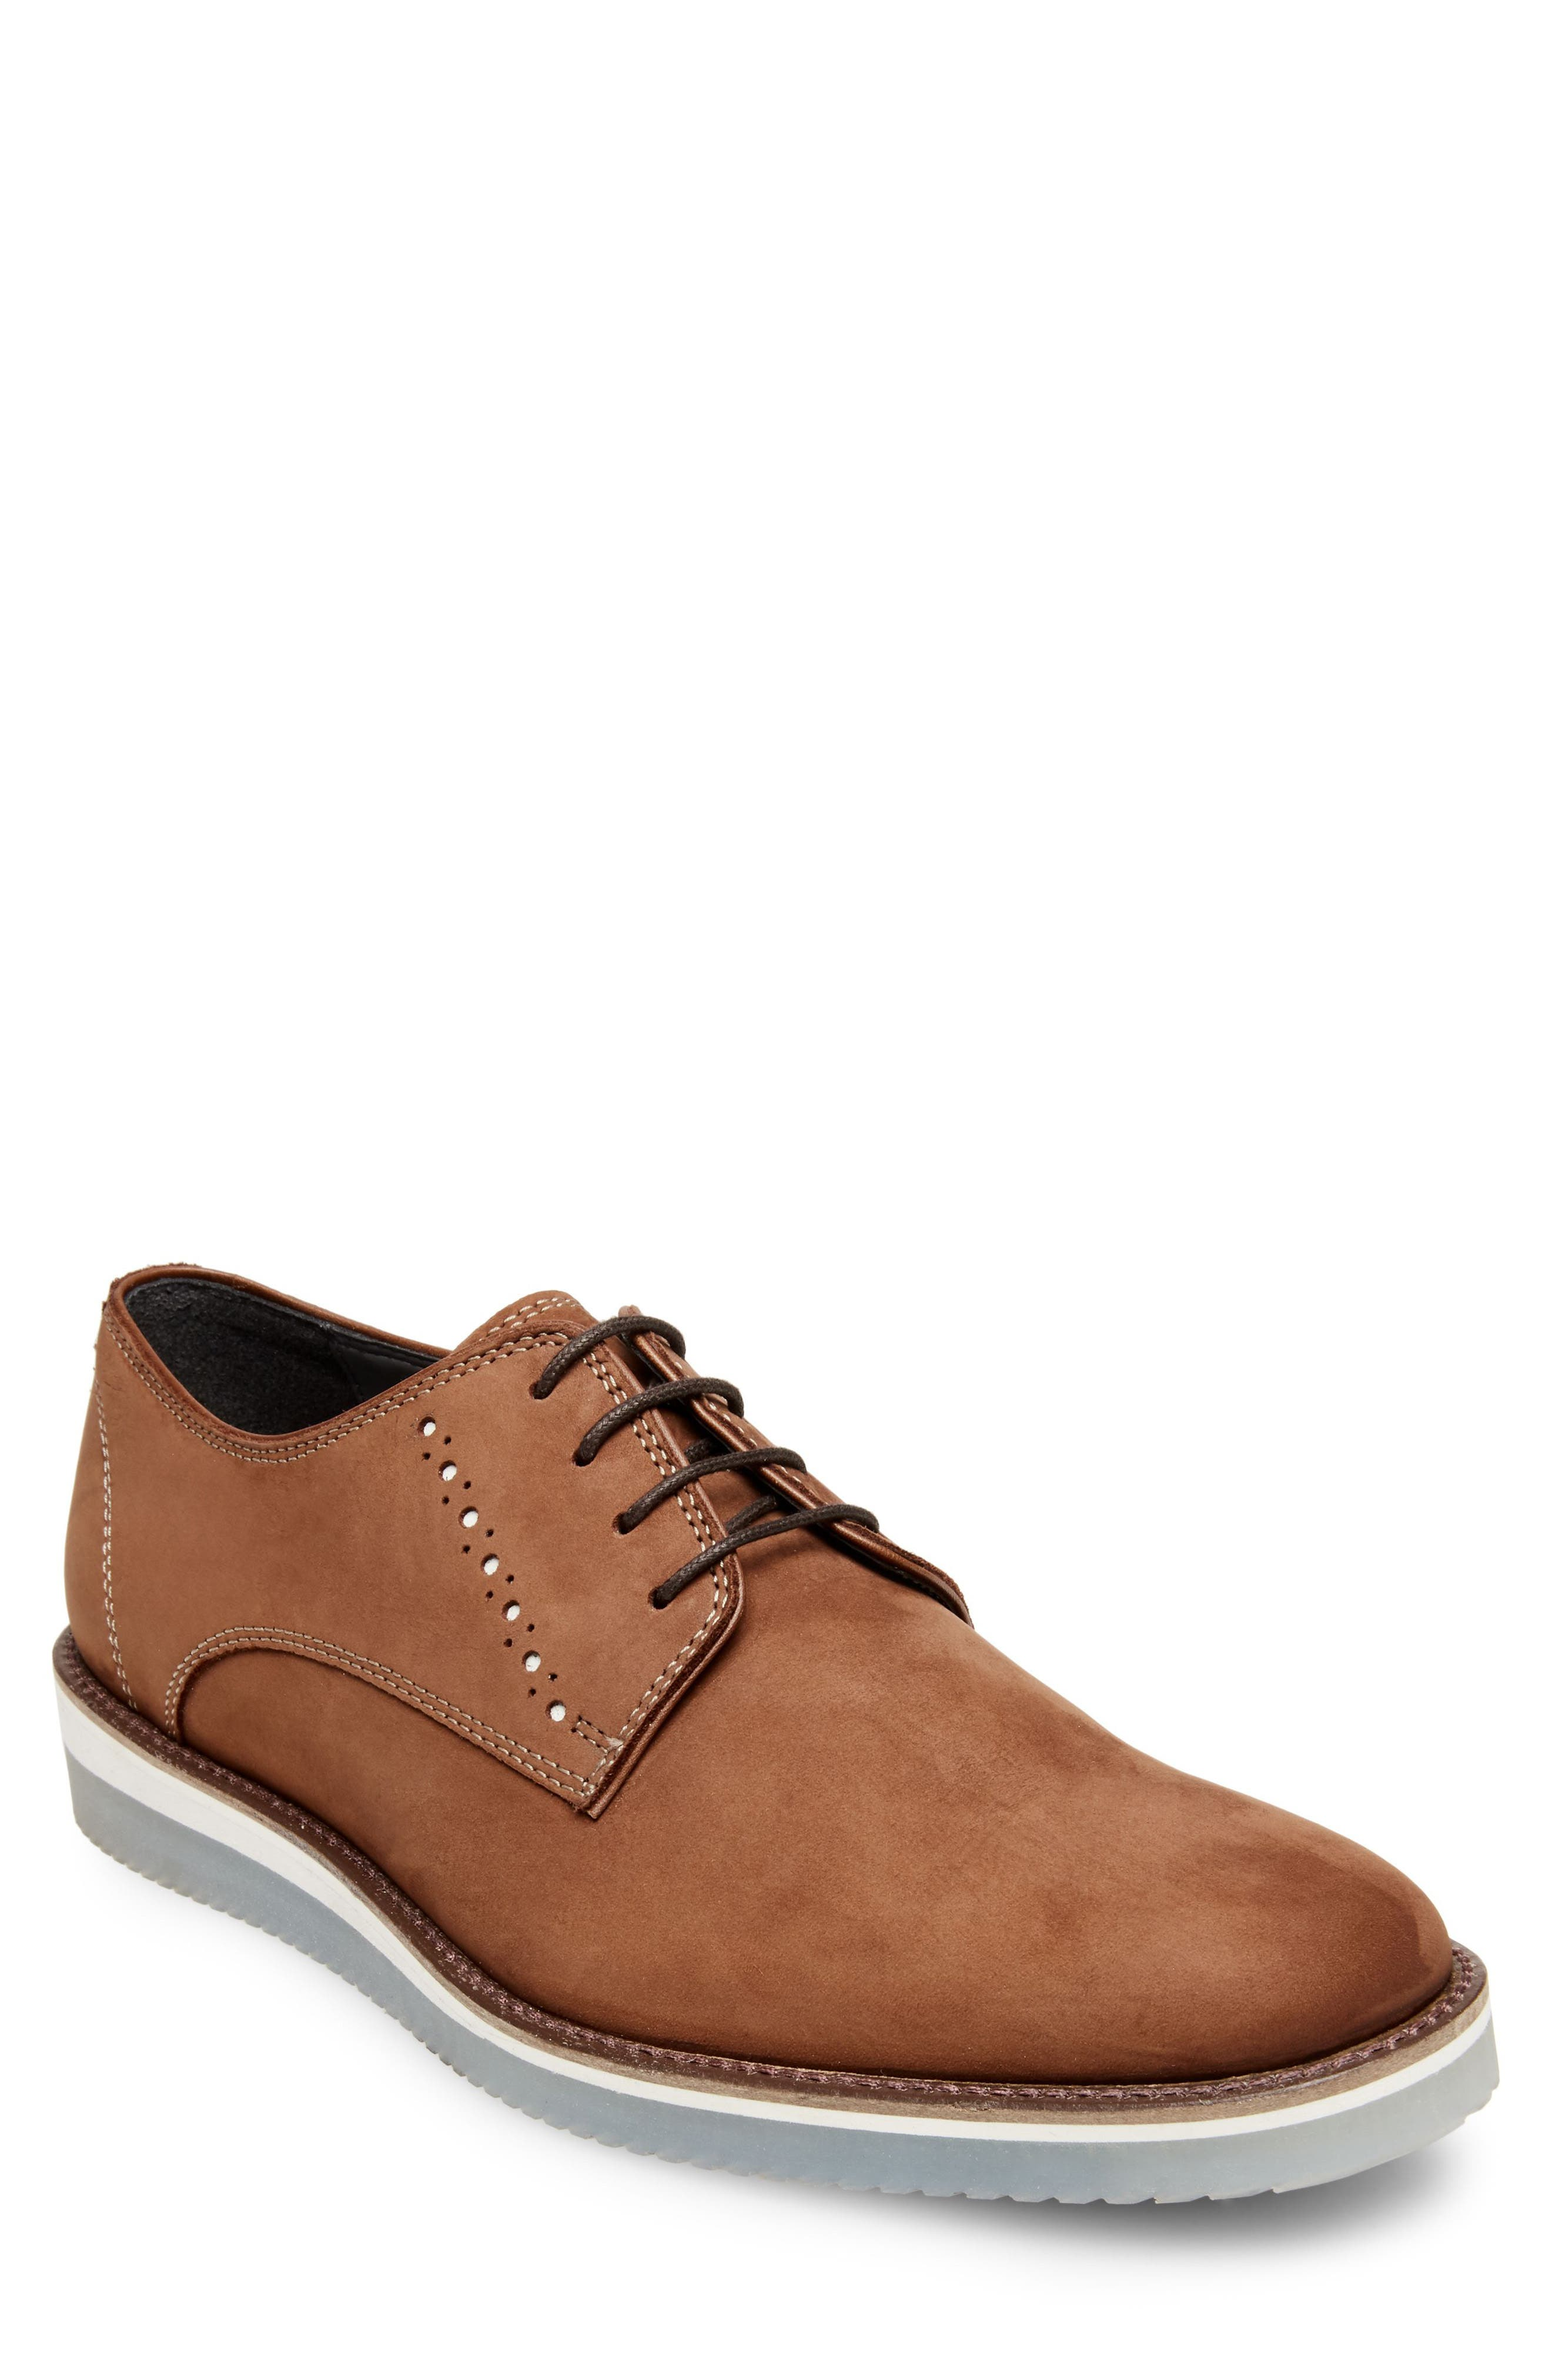 Inquest Plain Toe Derby,                             Main thumbnail 1, color,                             Cognac Nubuck